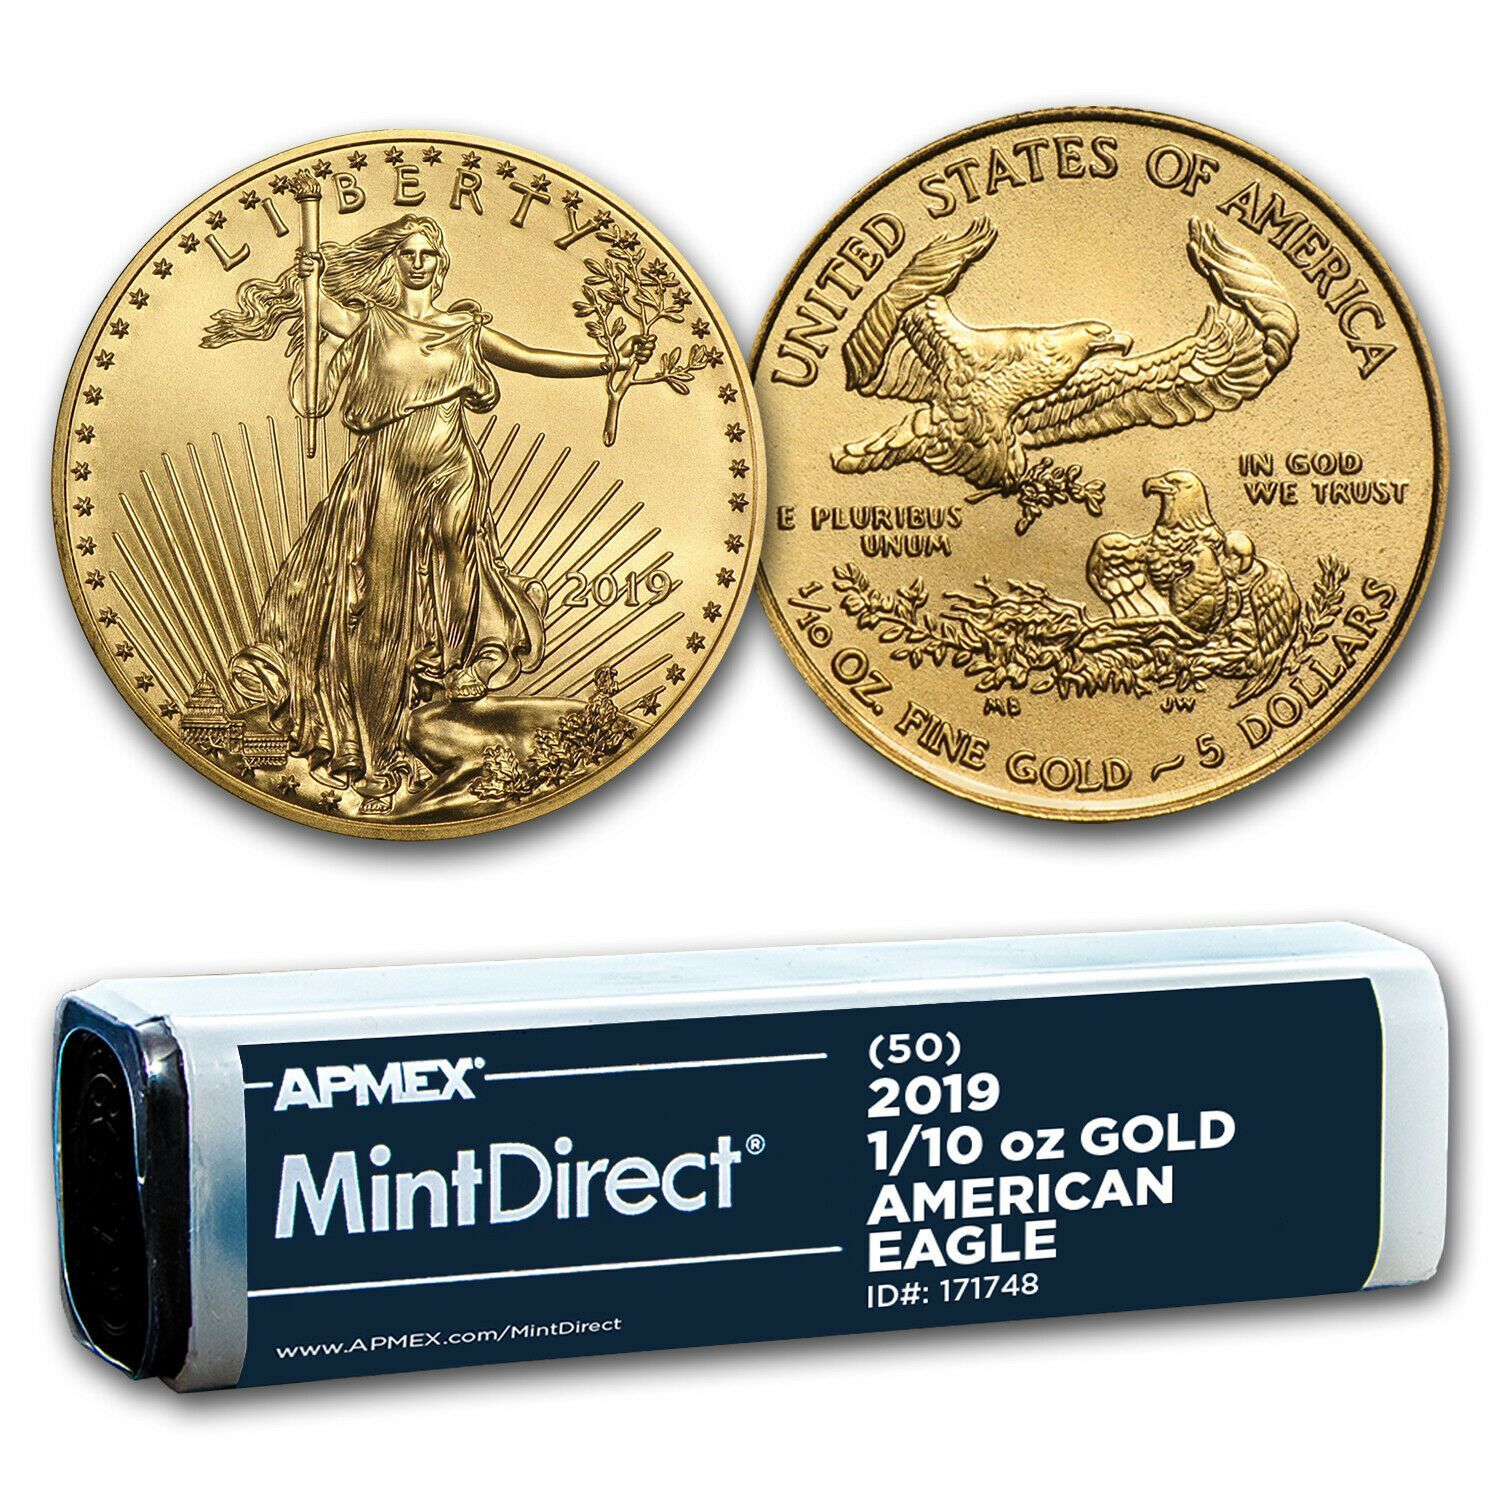 2019 1 10 Oz Gold American Eagle 50 Coin Mintdirect Tube Sku 171748 Price Us 8855 43 Buy With Con In 2020 Gold American Eagle Gold Eagle Coins Where To Buy Gold